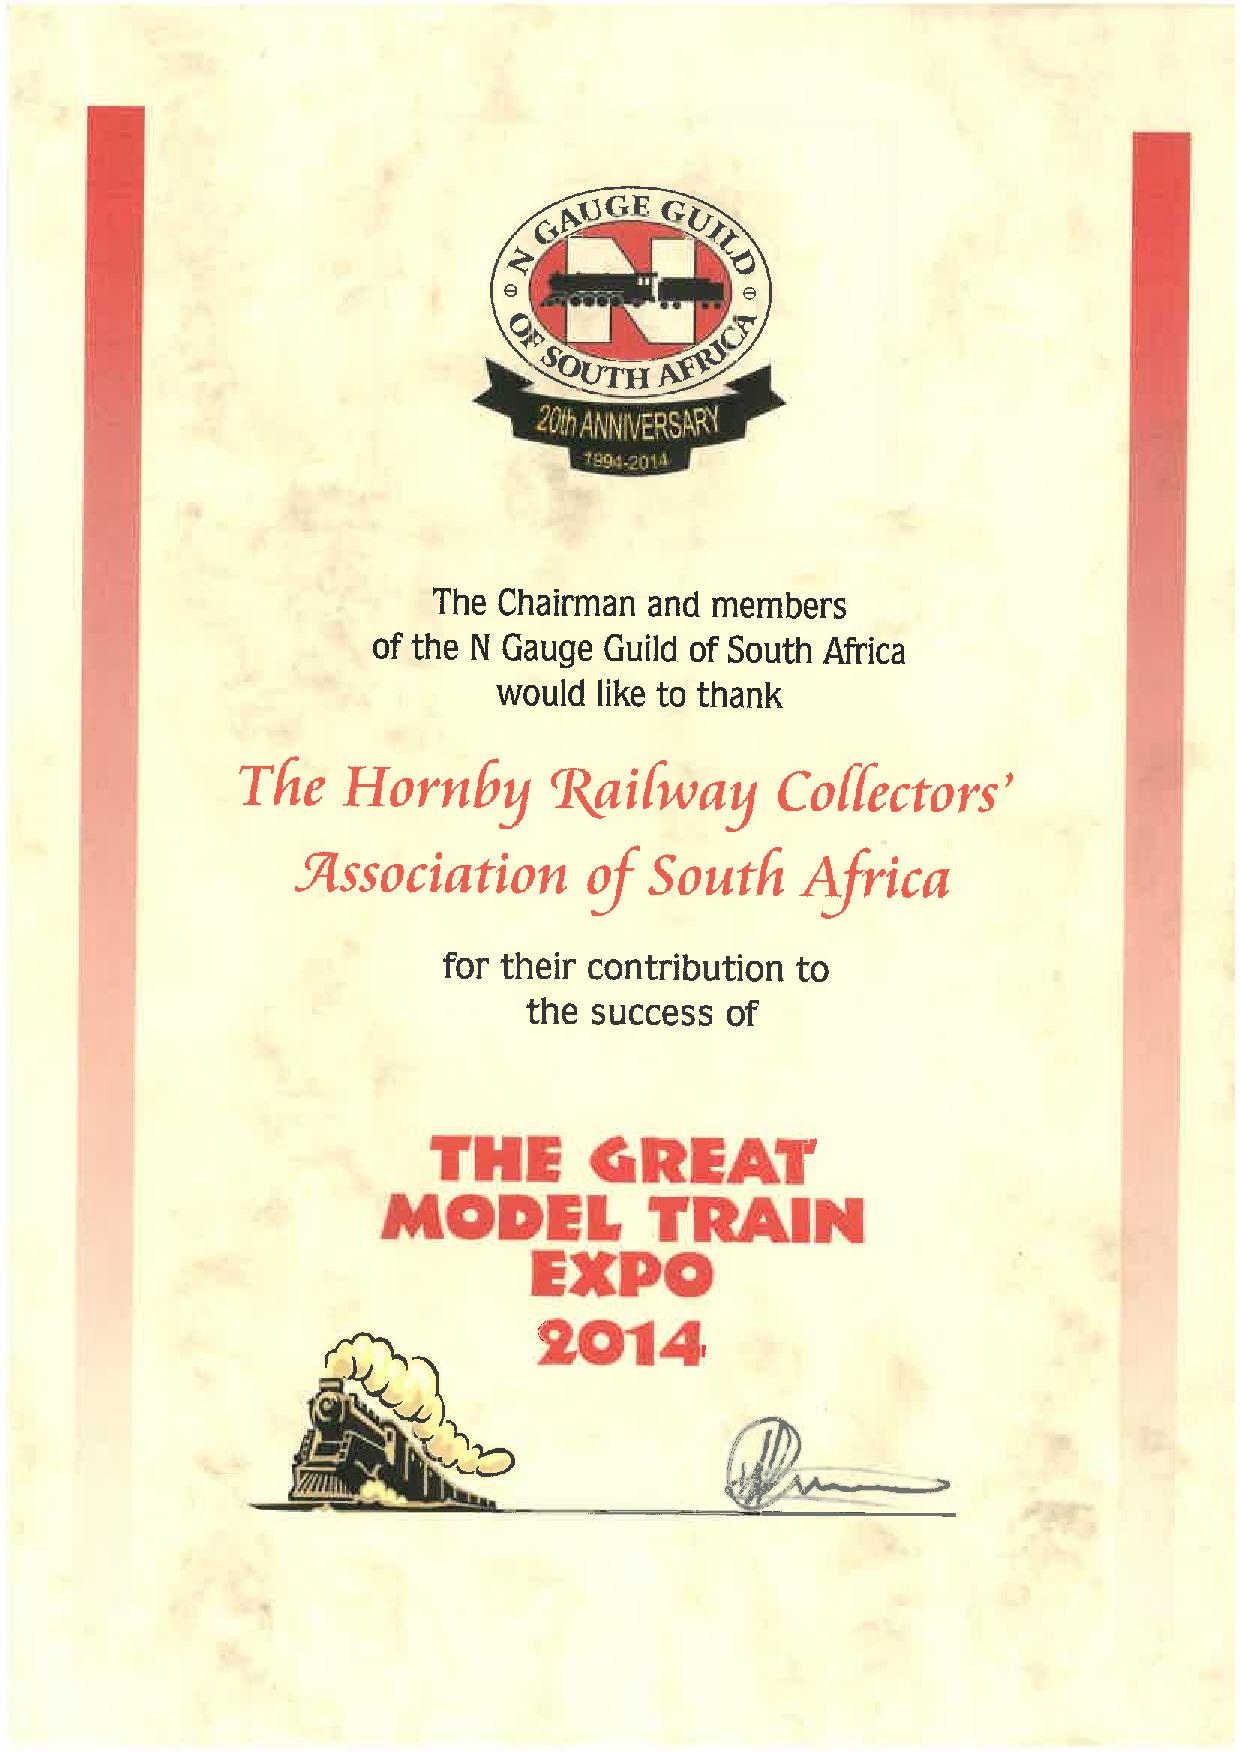 Certificate presented by the N Gauge Guild of South Africa